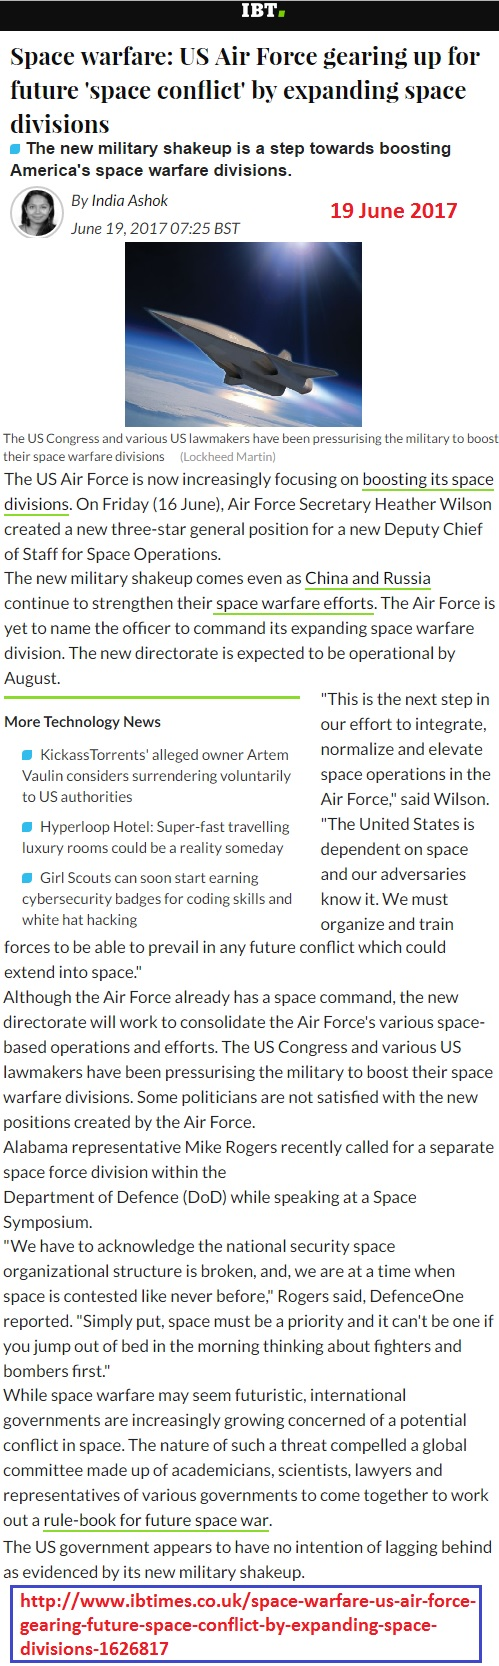 https://www.ibtimes.co.uk/space-warfare-us-air-force-gearing-future-space-conflict-by-expanding-space-divisions-1626817